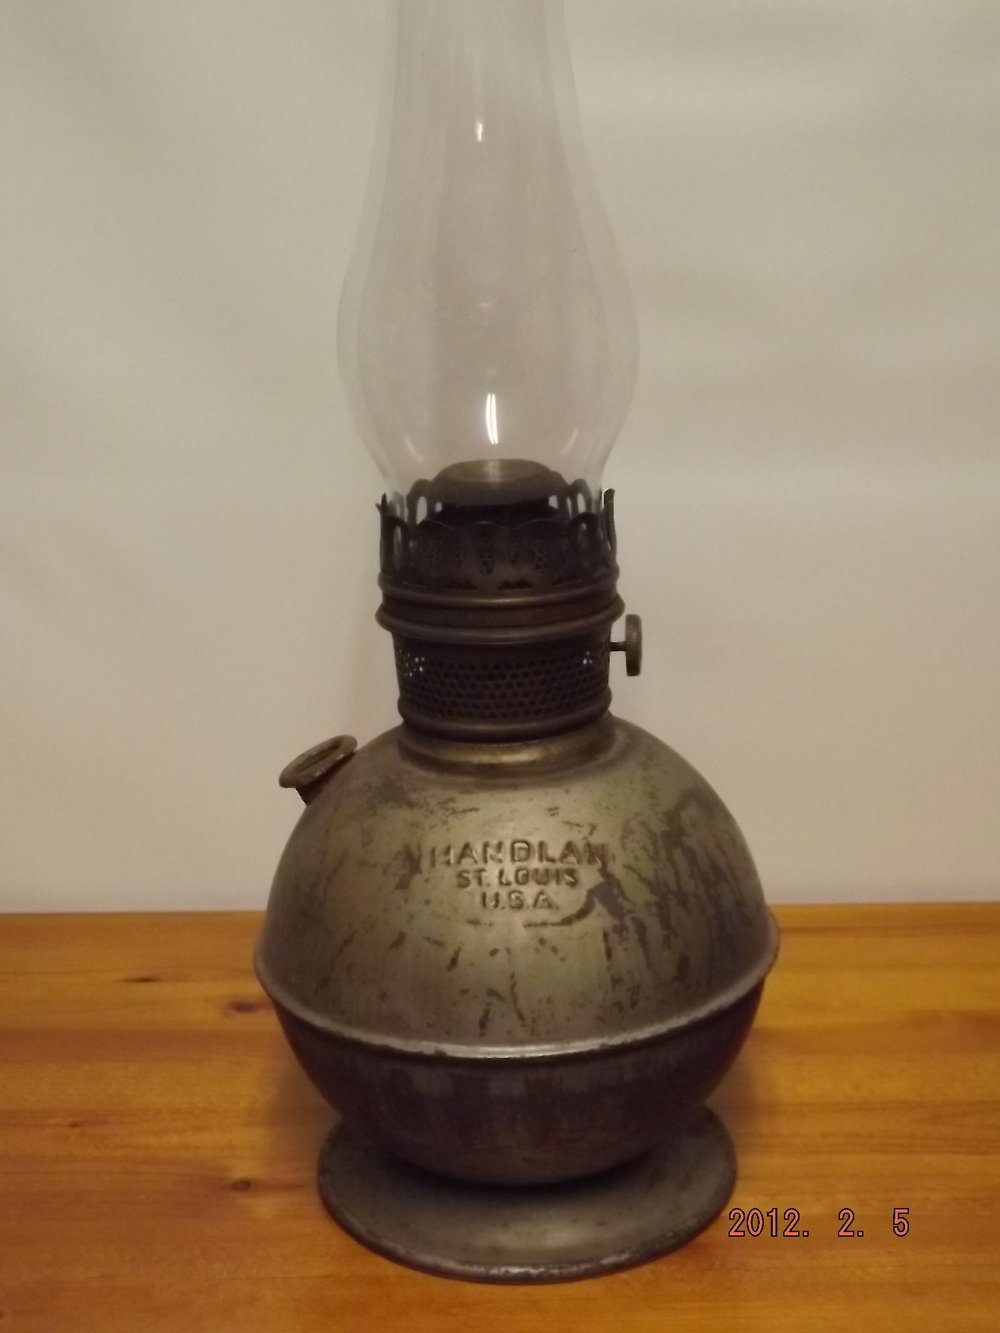 Misc antique vintage oil lamps antique kerosene lighting railroad bunk car lamp cpr caboose lamp handlan lamp handlan caboose lamp bunk car lamp aloadofball Choice Image